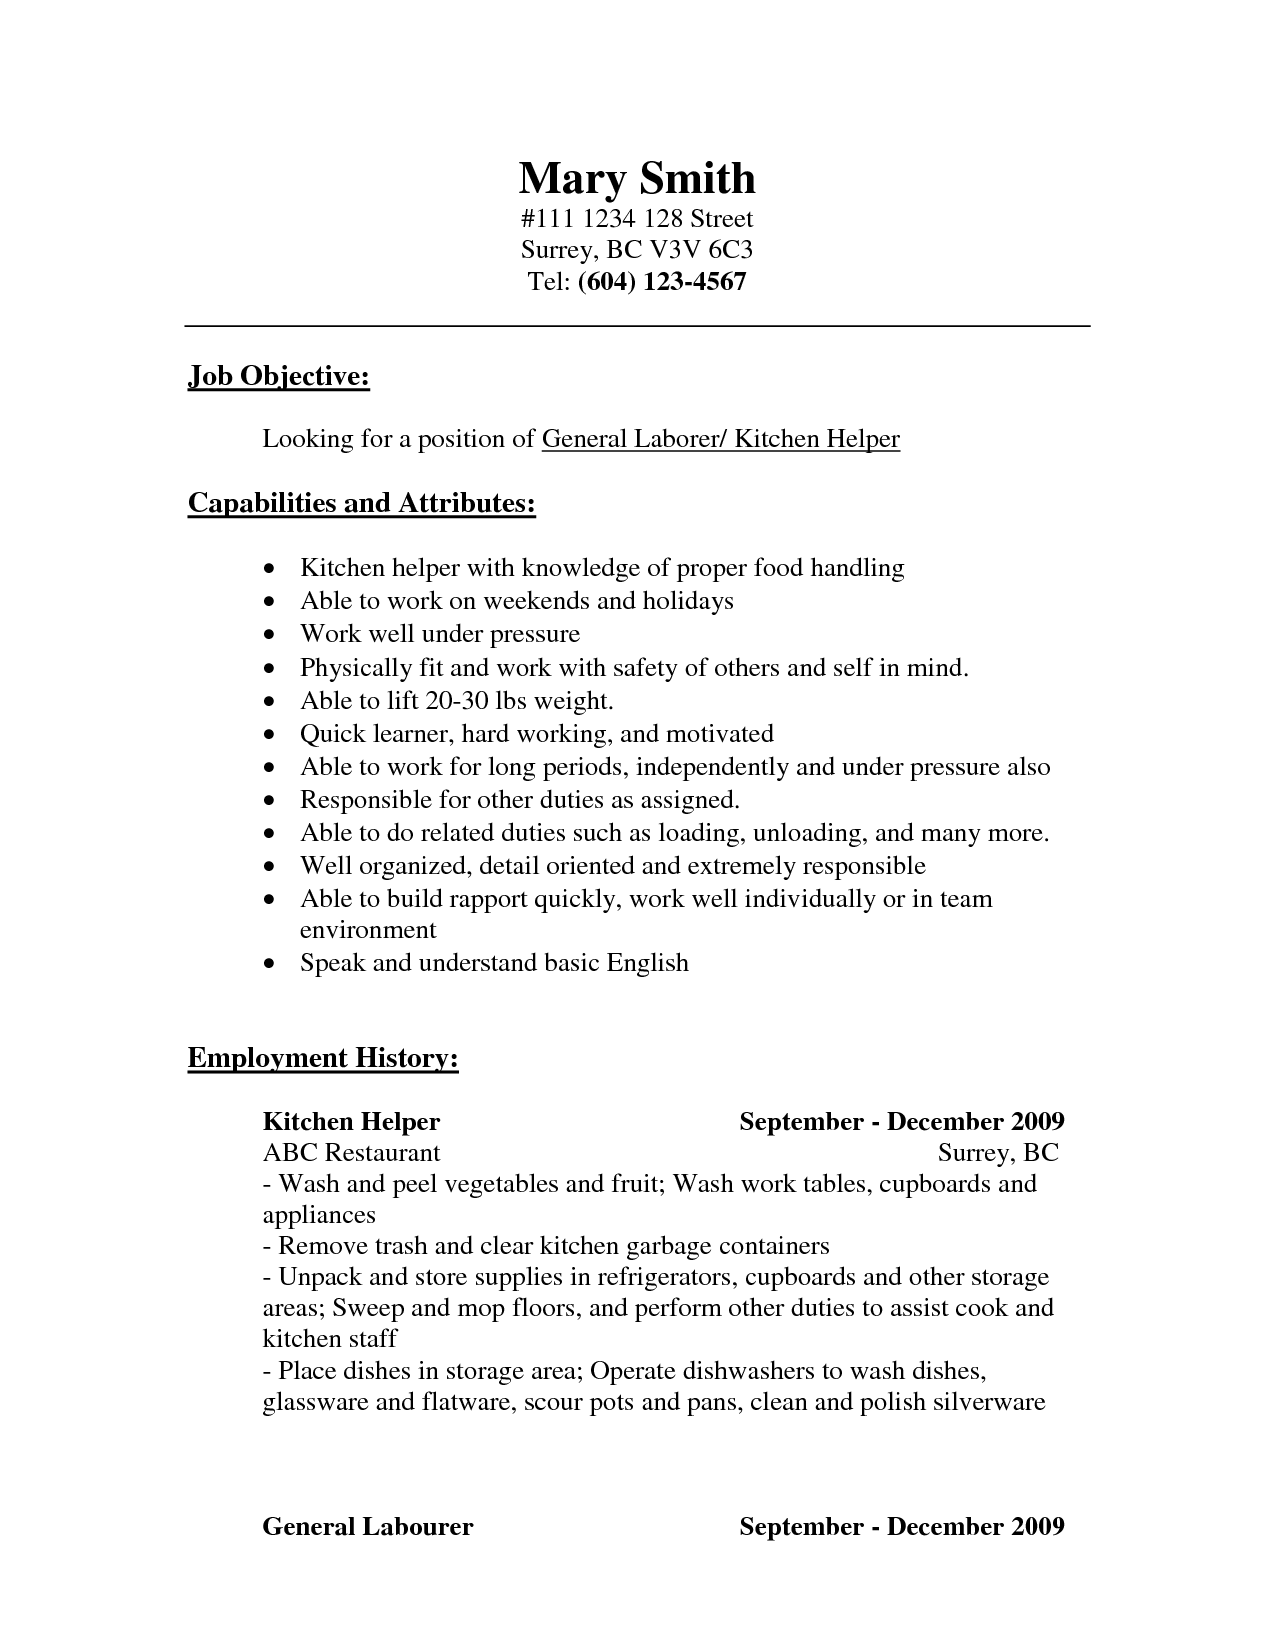 Resume Helper Cover Letter Electrician And Letters Sample Great  D57a1aee956fe33def13582a1a8fab46 733242383053251020  Resume Helper